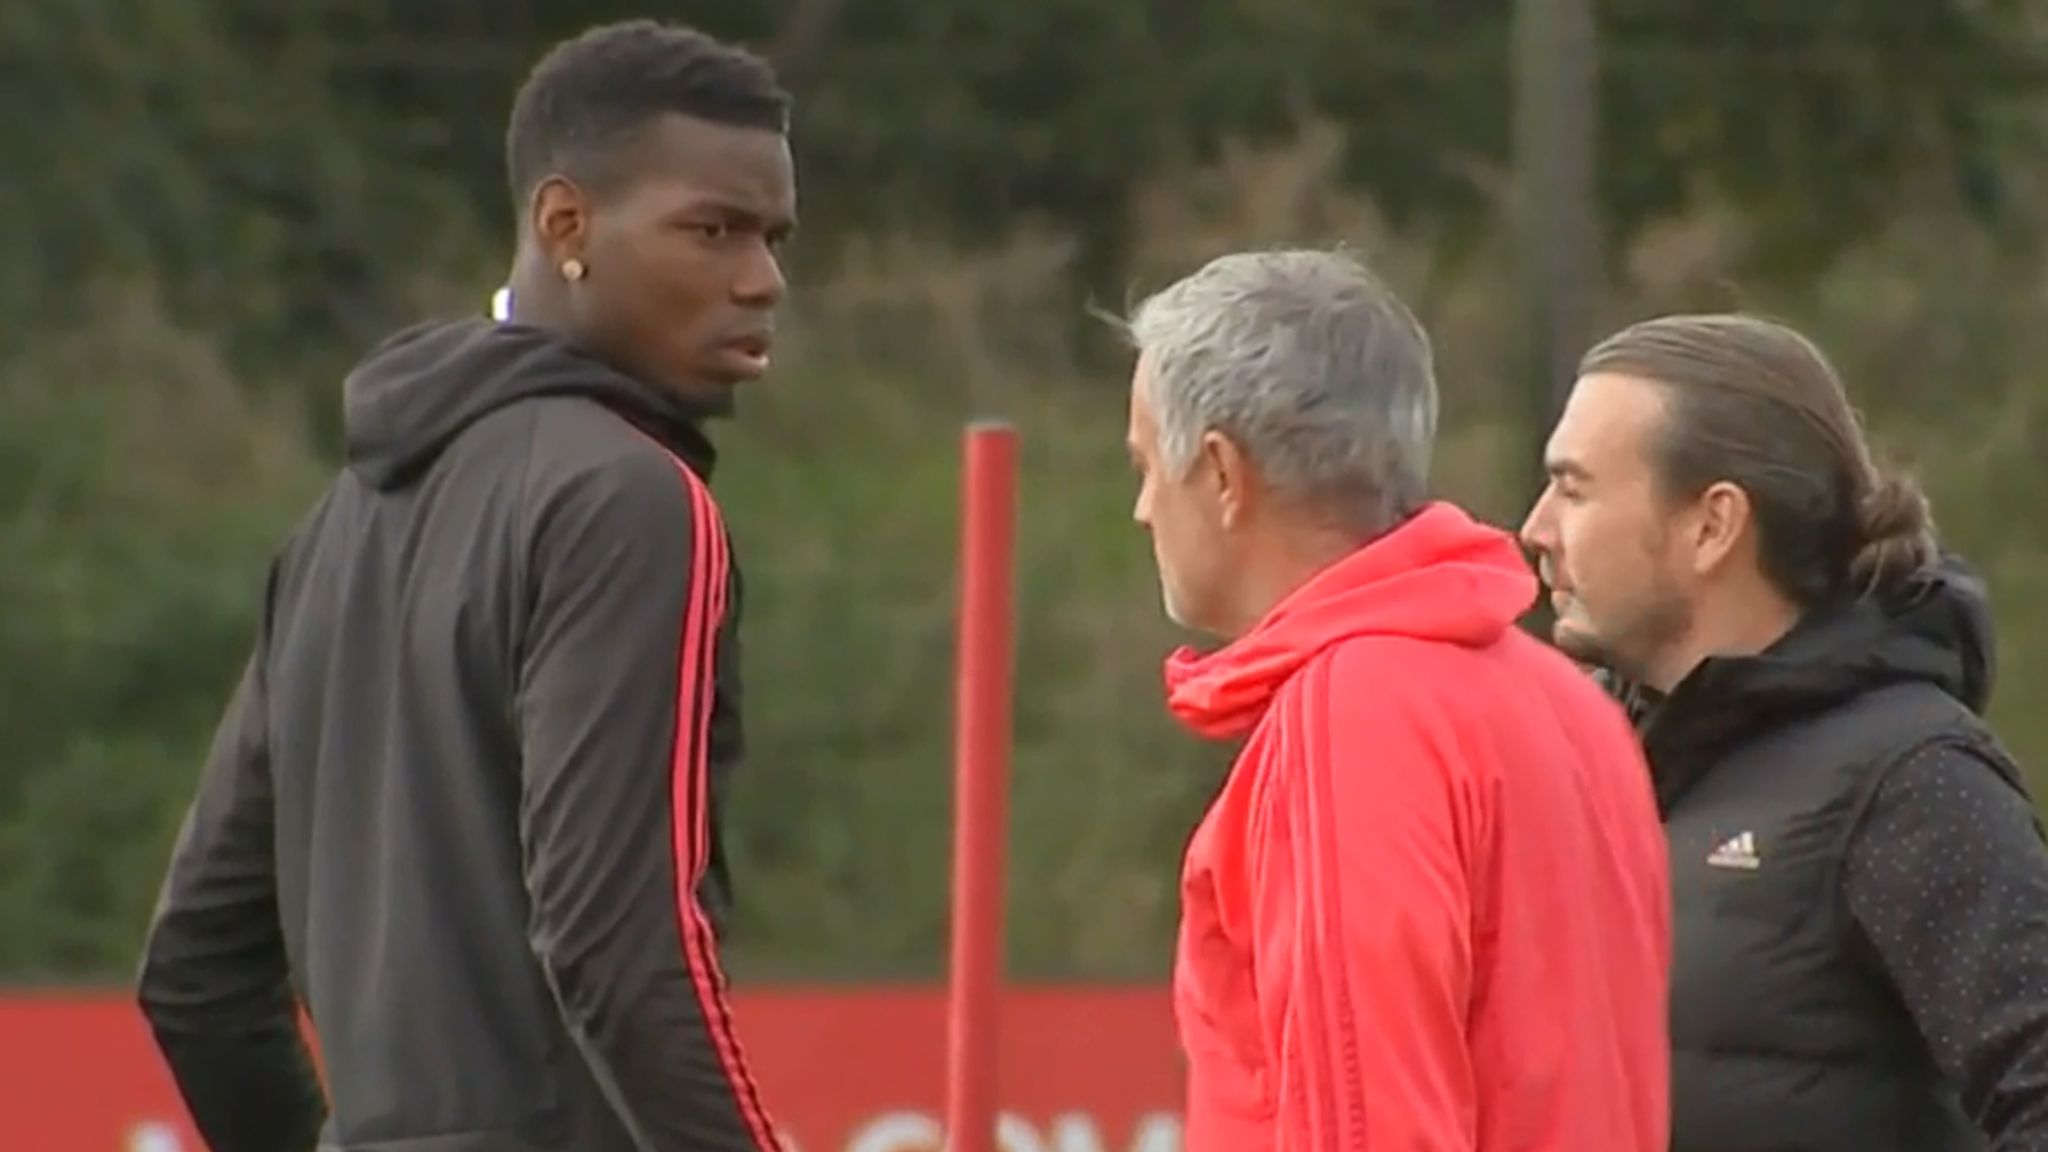 Jose Mourinho and Paul Pogba have frosty exchange | Football News | Sky  Sports